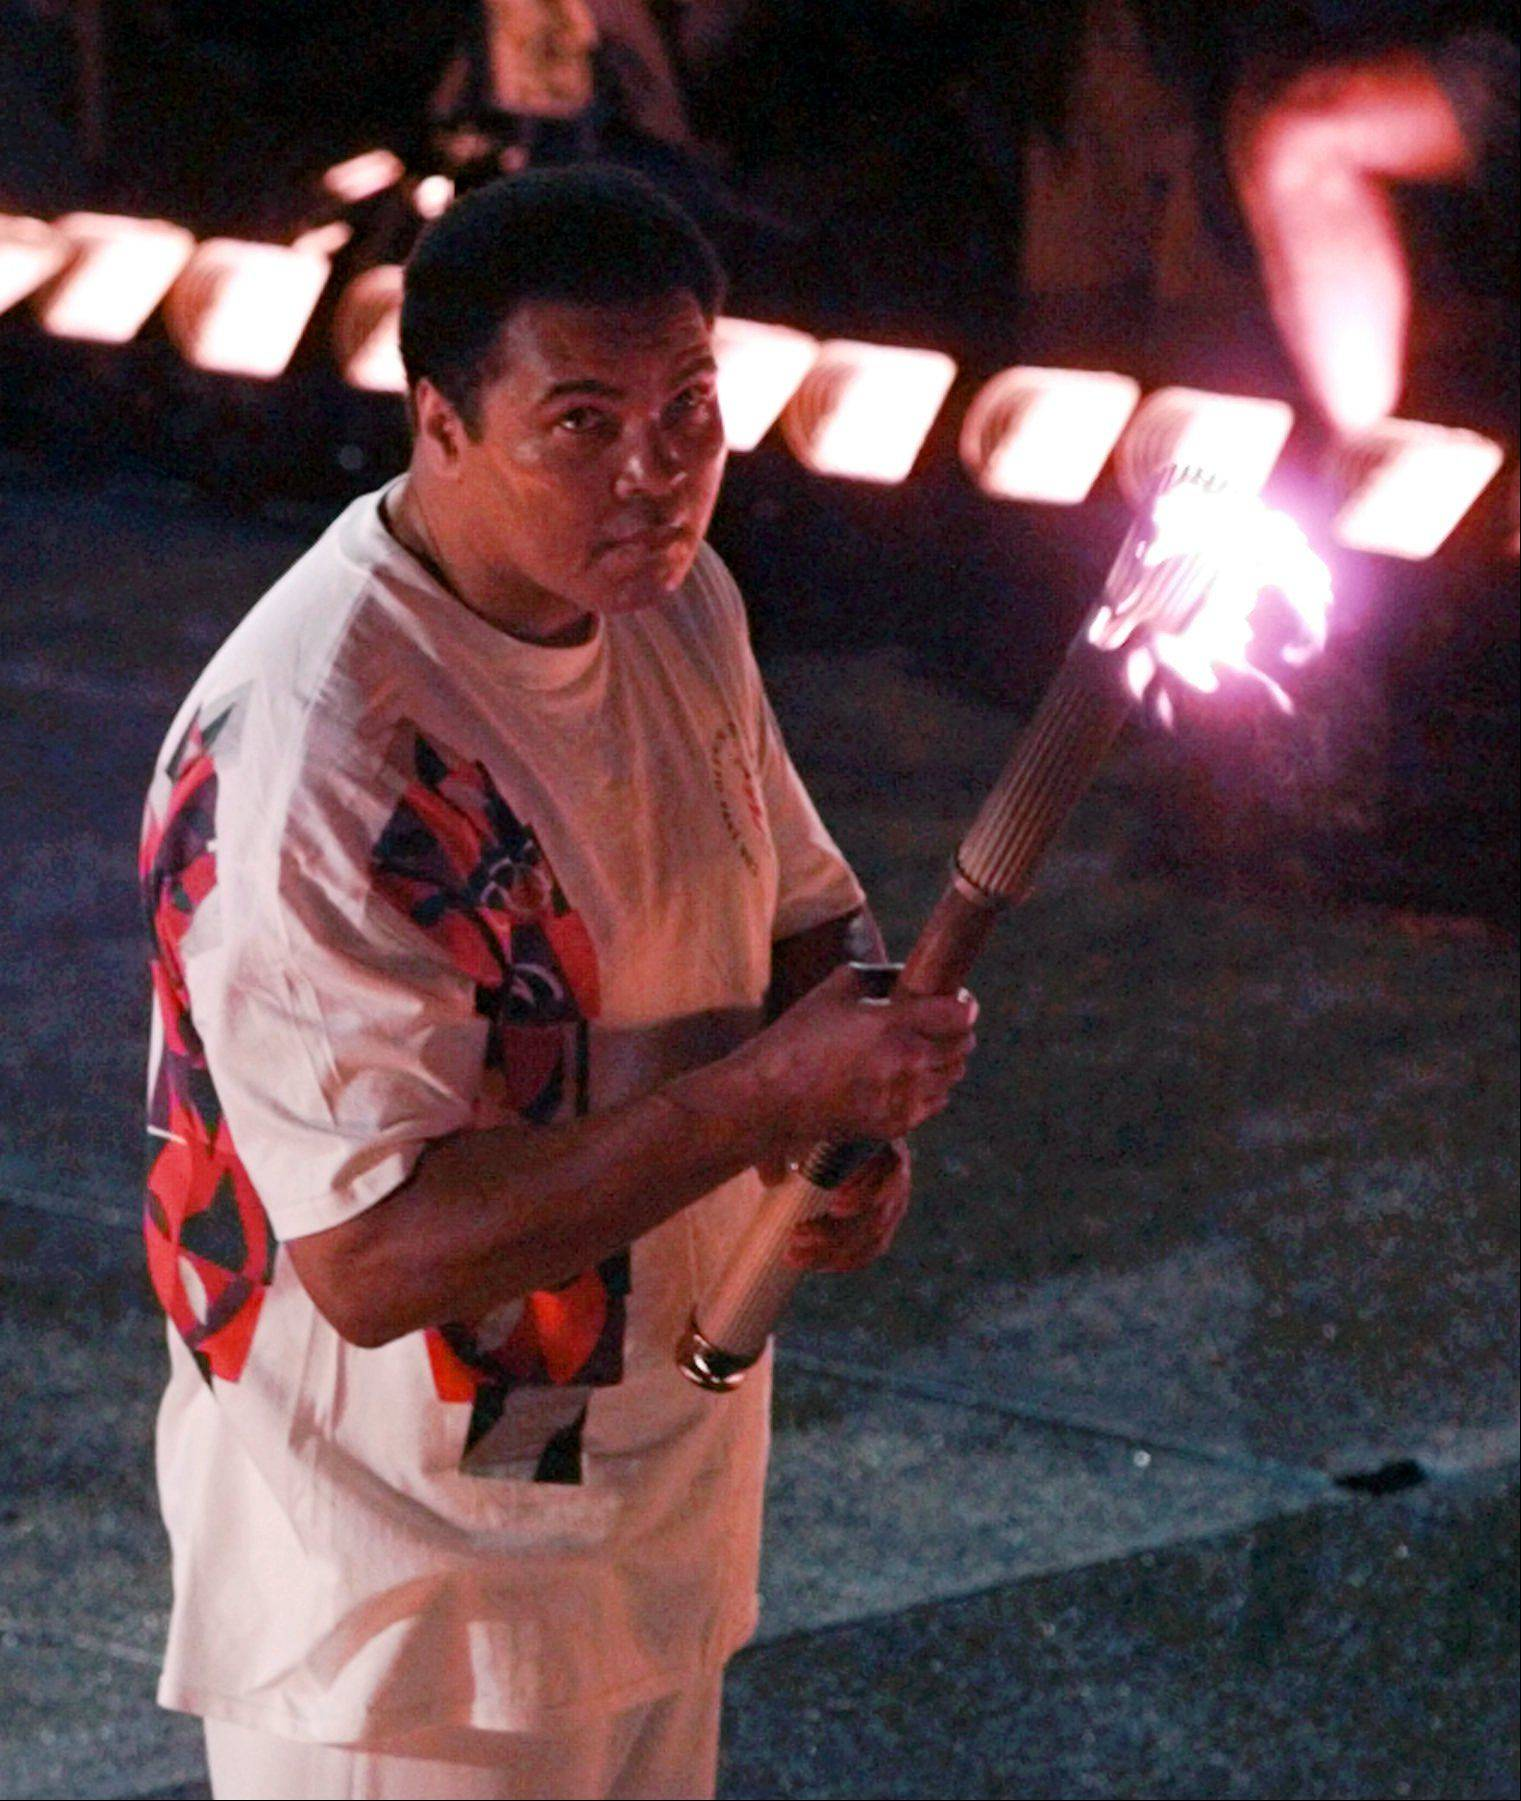 Muhammad Ali watches as the flame climbs up to the Olympic torch during the opening ceremonies of the Summer Olympics Friday, July 19, 1996, in Atlanta.